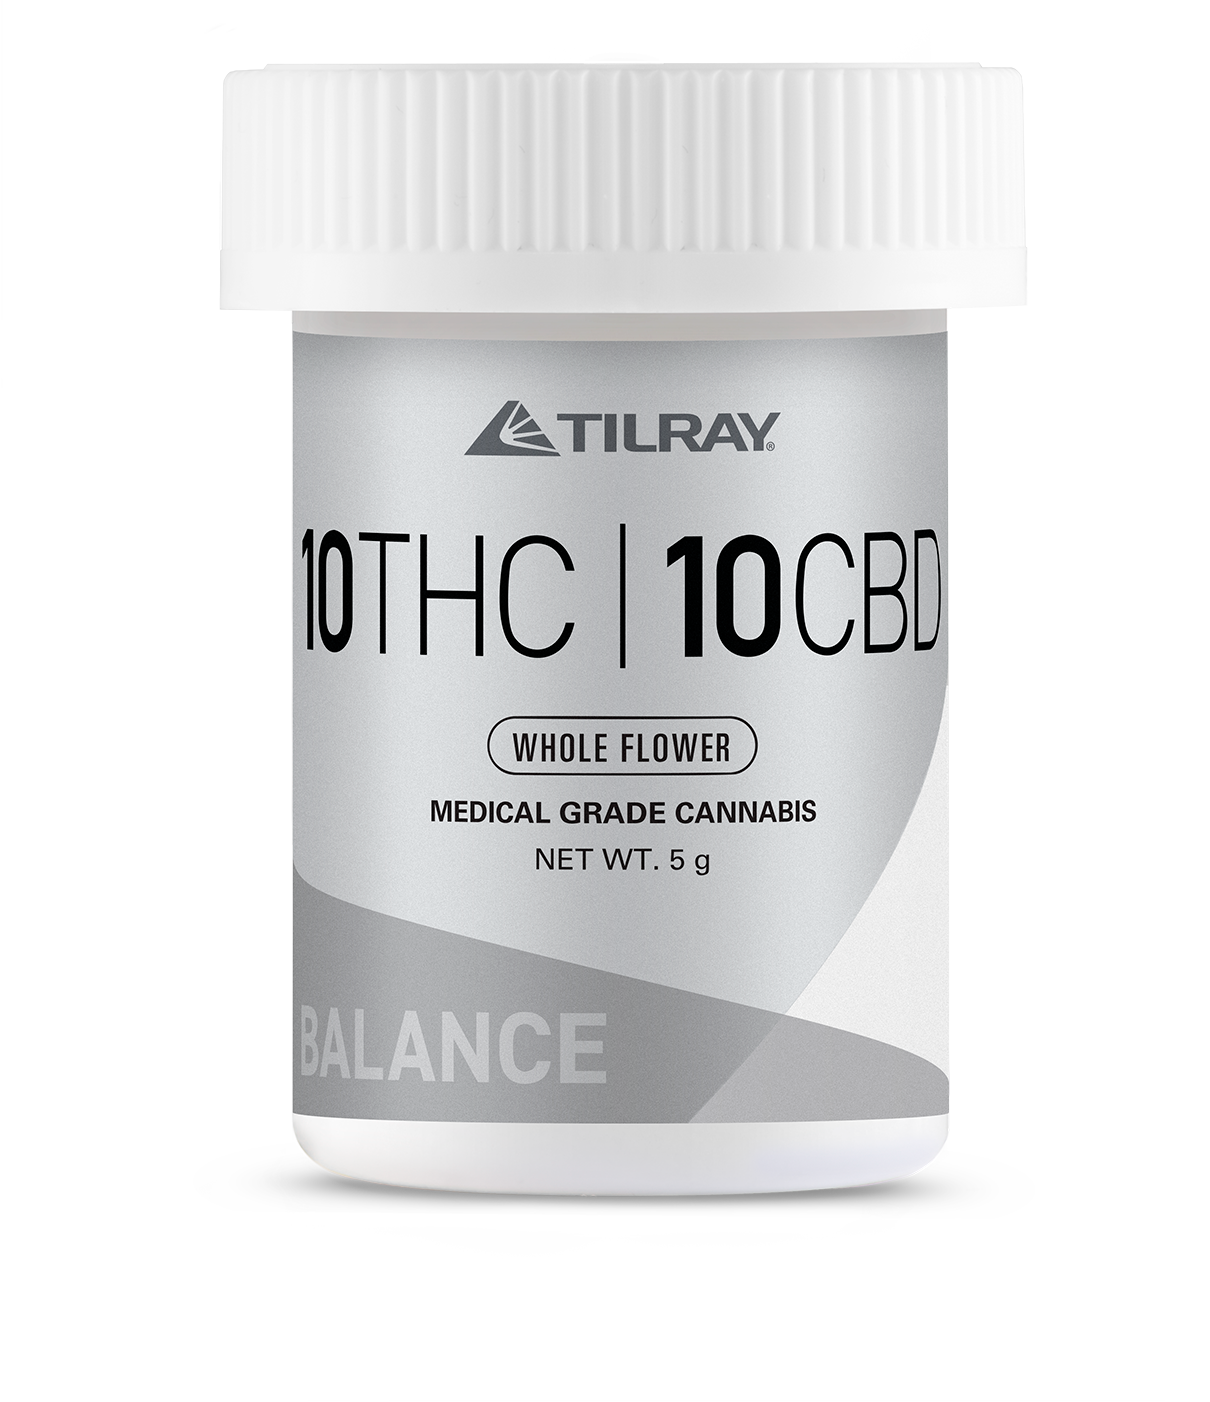 Tilray: Products